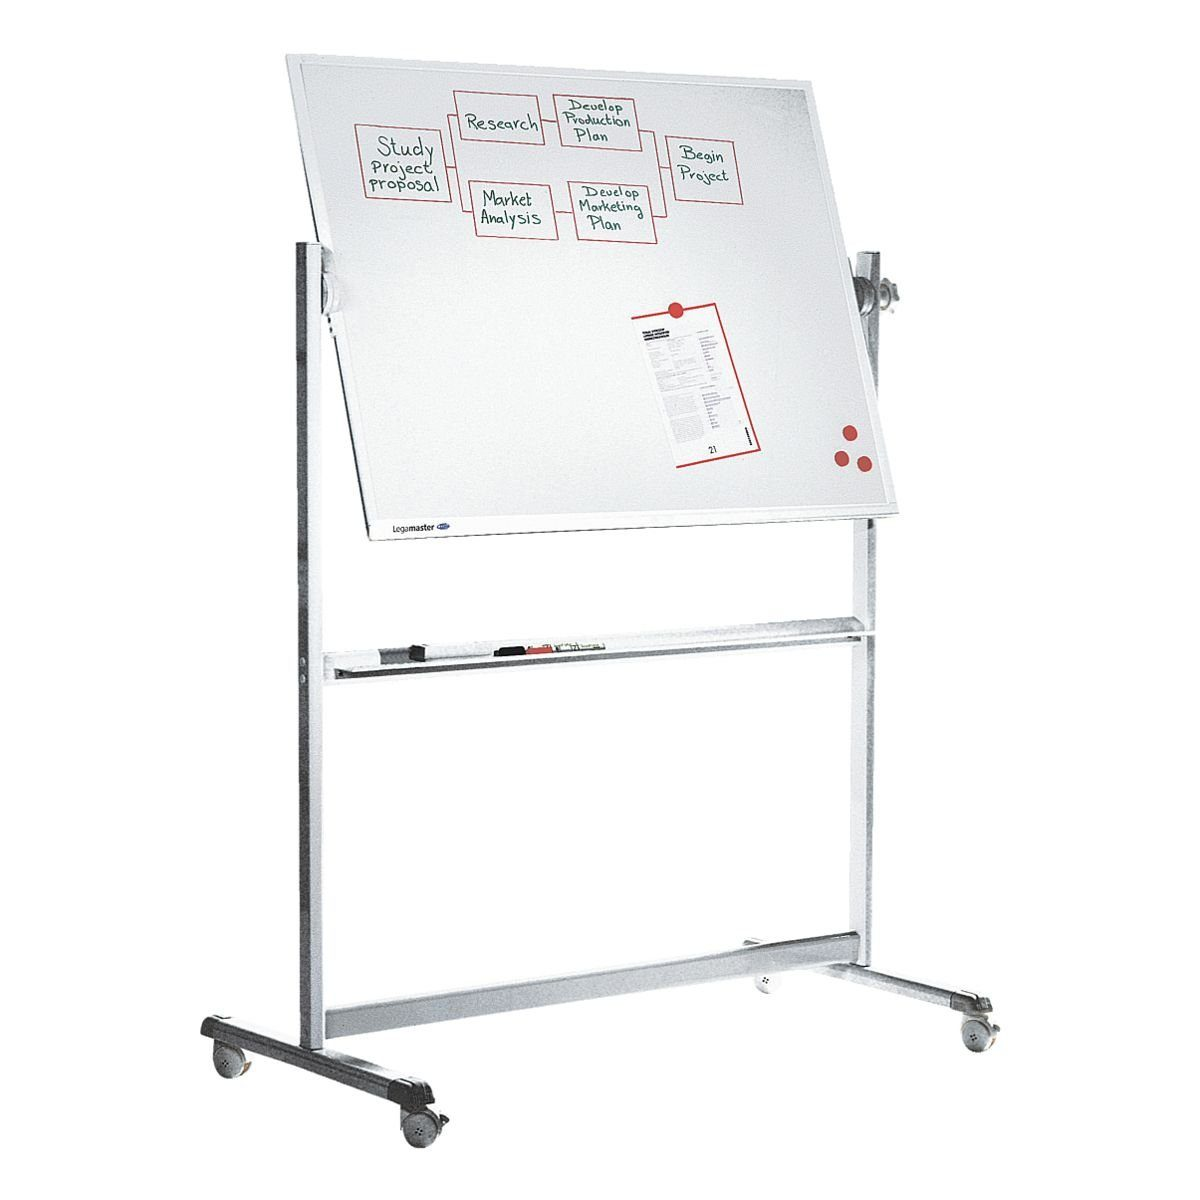 LEGAMASTER Whiteboard 7-100463 emailliert, 150 x 100 cm »Professional«